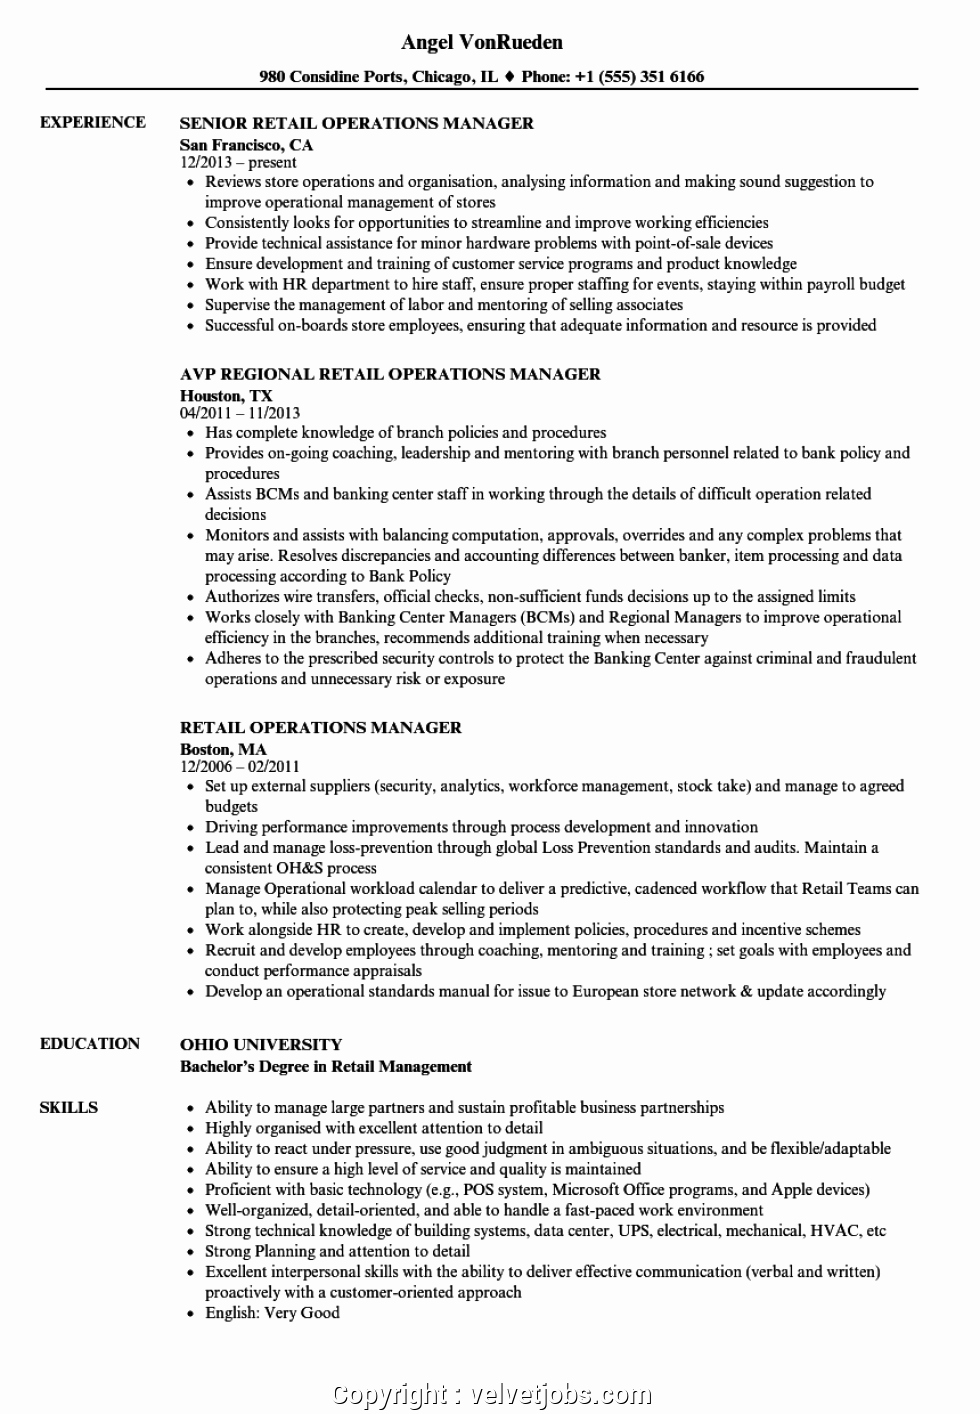 Retail Store Manager Resume Samples Fresh Best Retail Operations Manager Resume Sample Retail